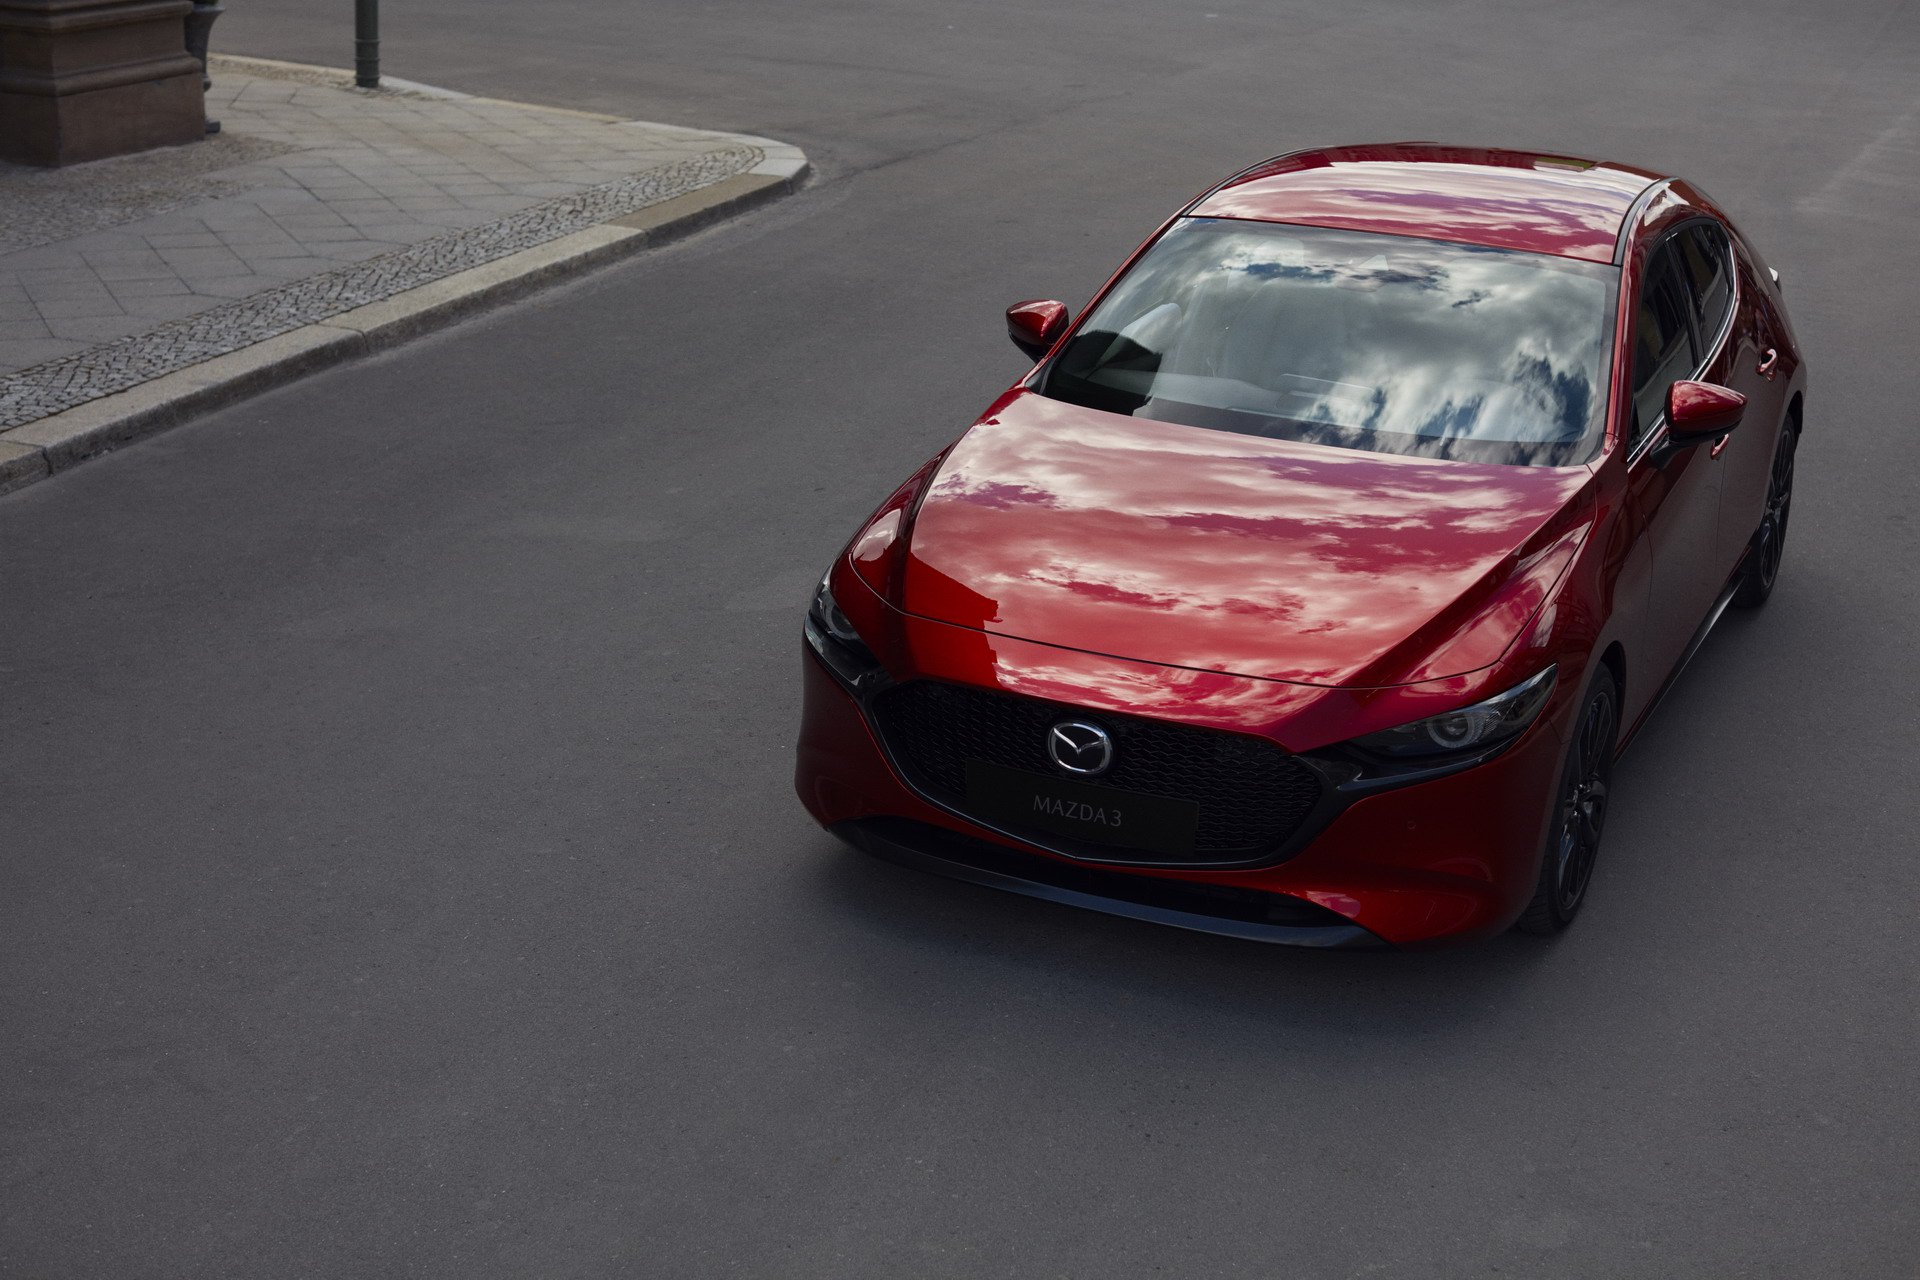 Mazda3 Hatchback and Mazda3 sedan 2019 (1)